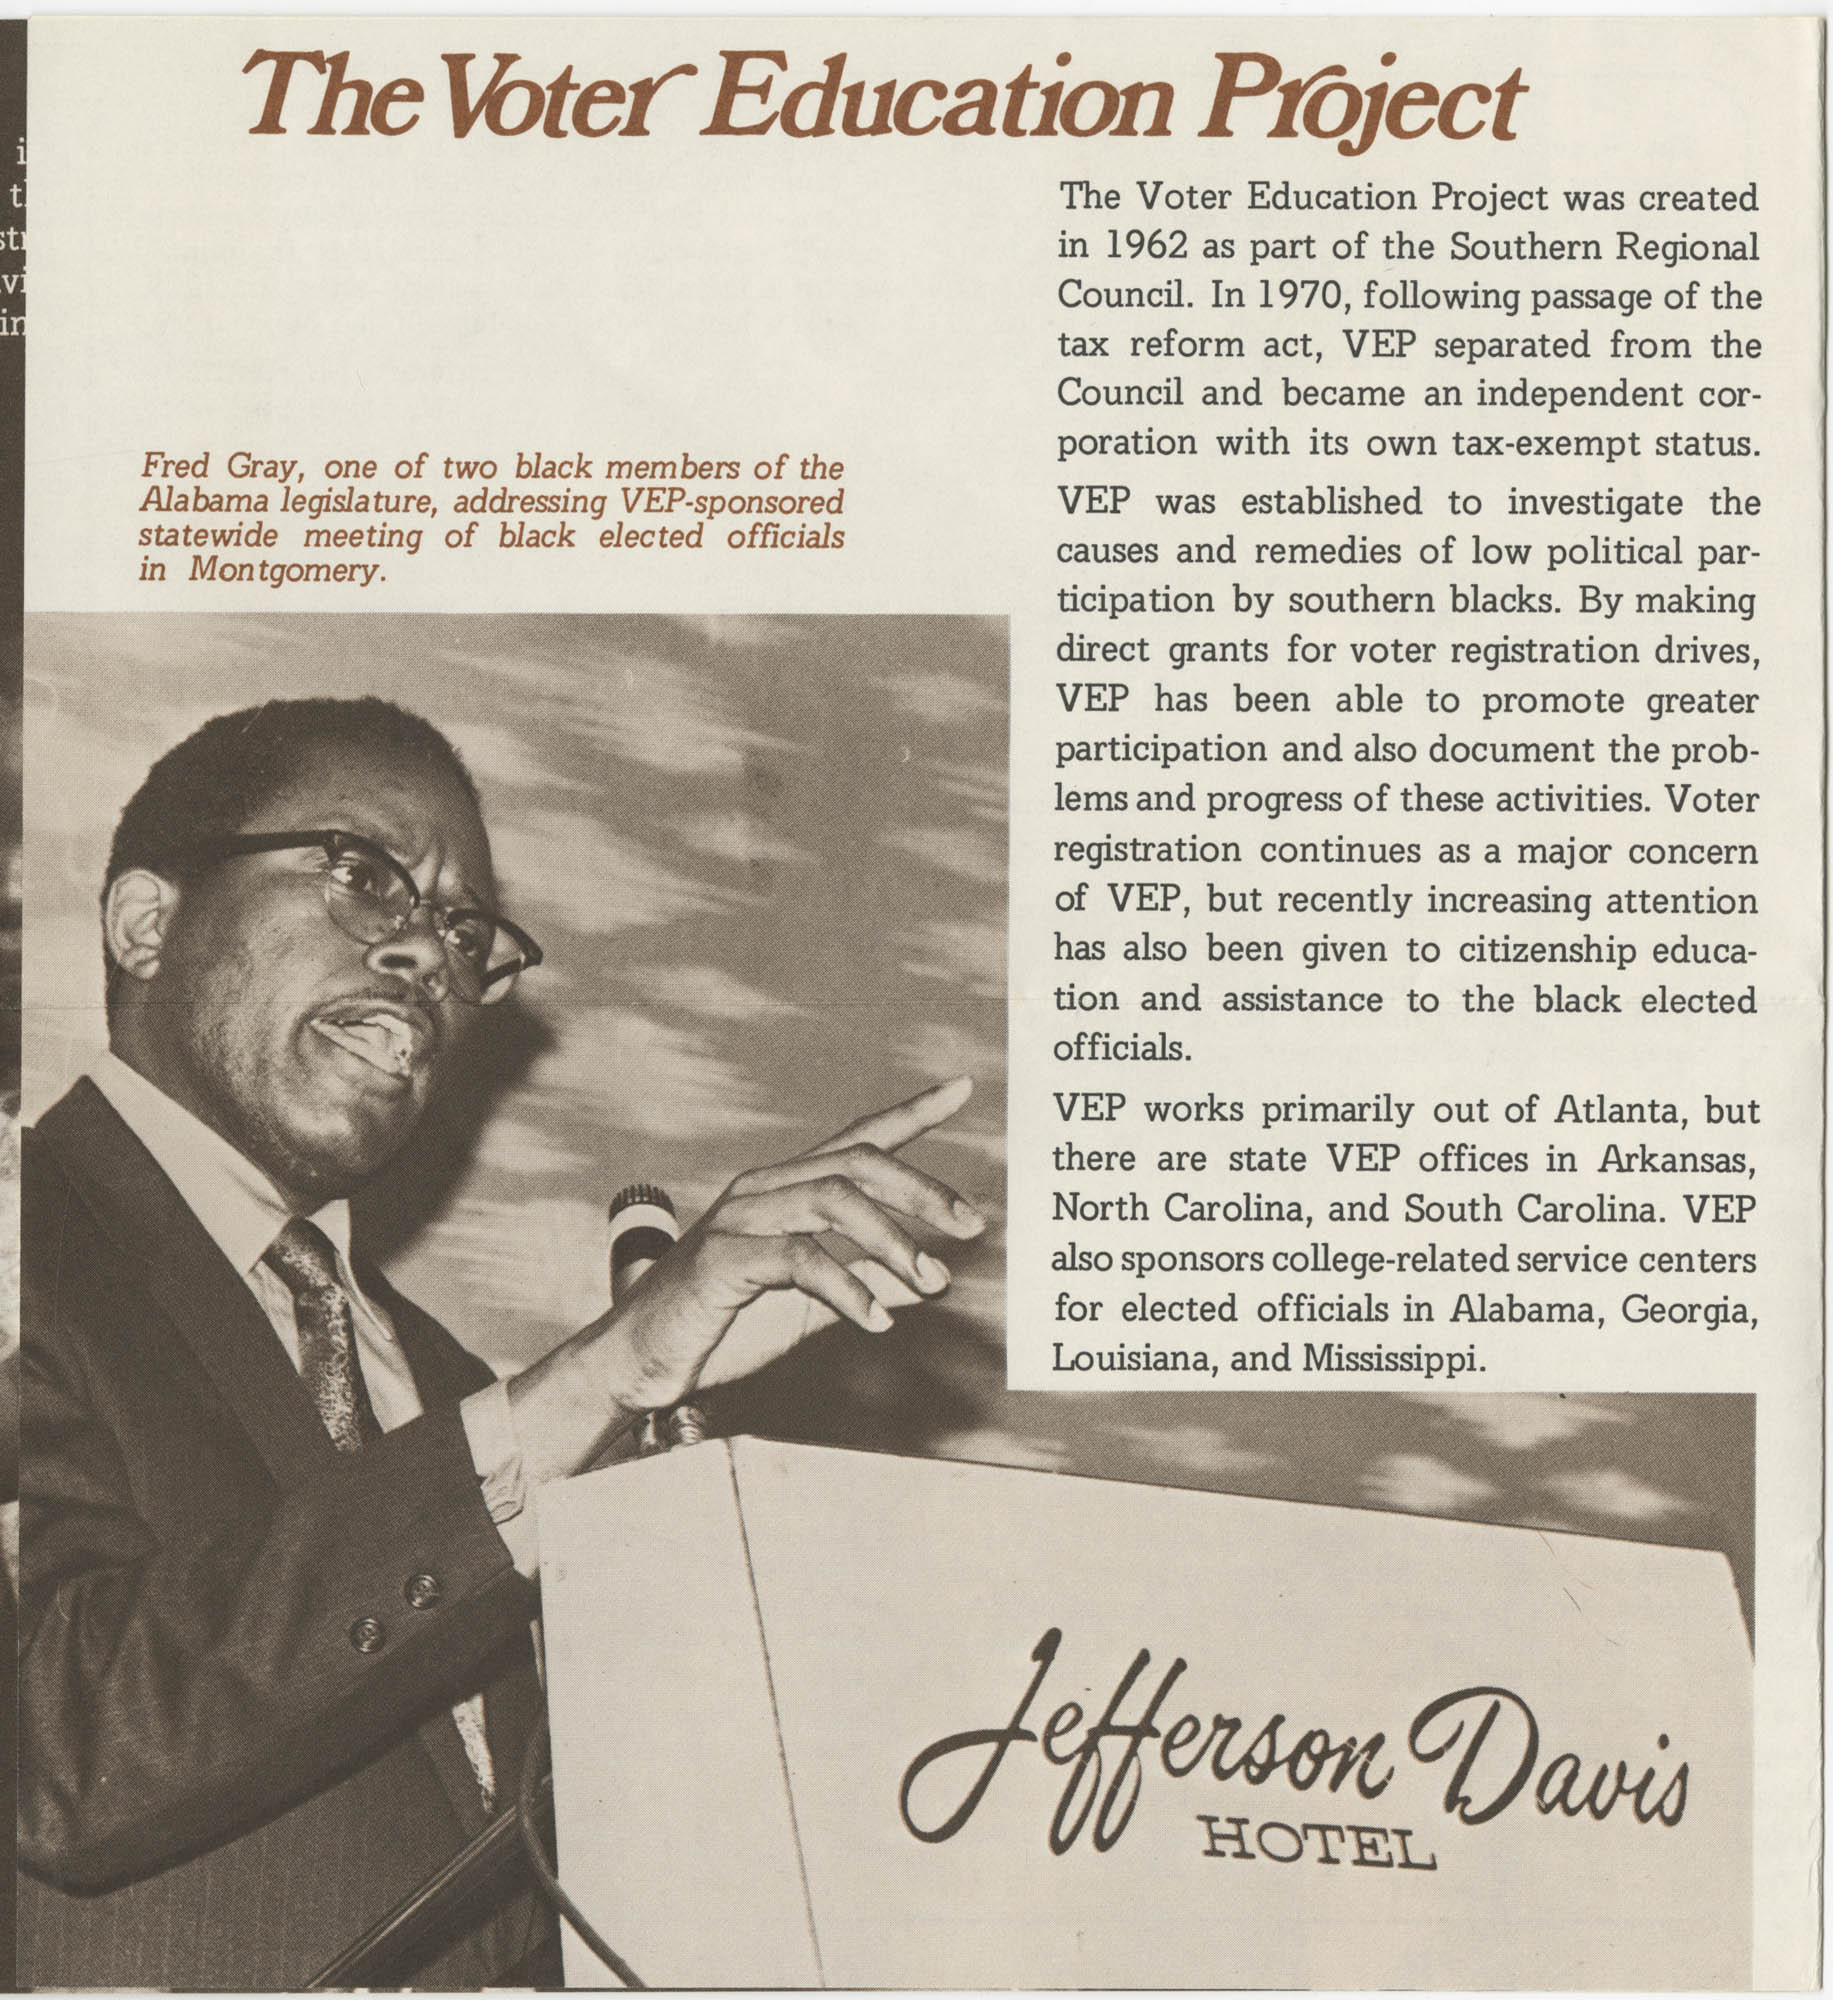 The Voter Education Project